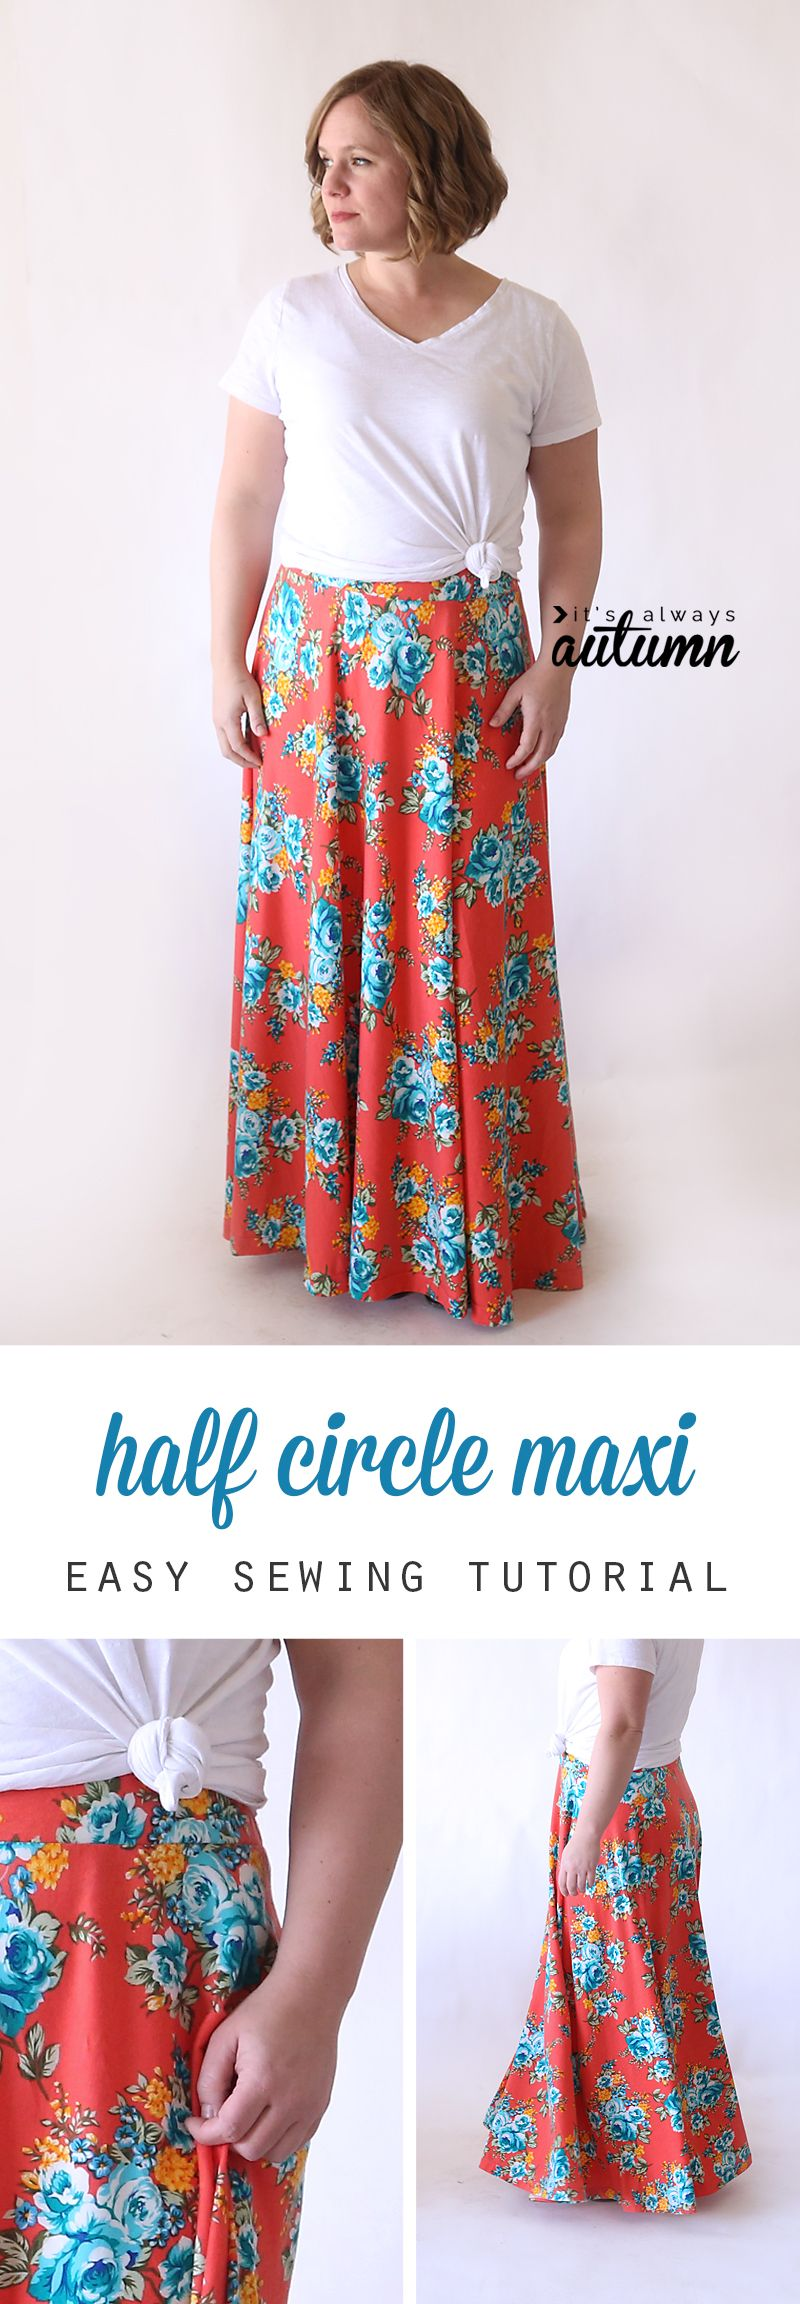 Half circle maxi skirt diy maxi skirt tutorials and easy how to make a full flattering diy maxi skirt without a pattern easy sewing jeuxipadfo Image collections